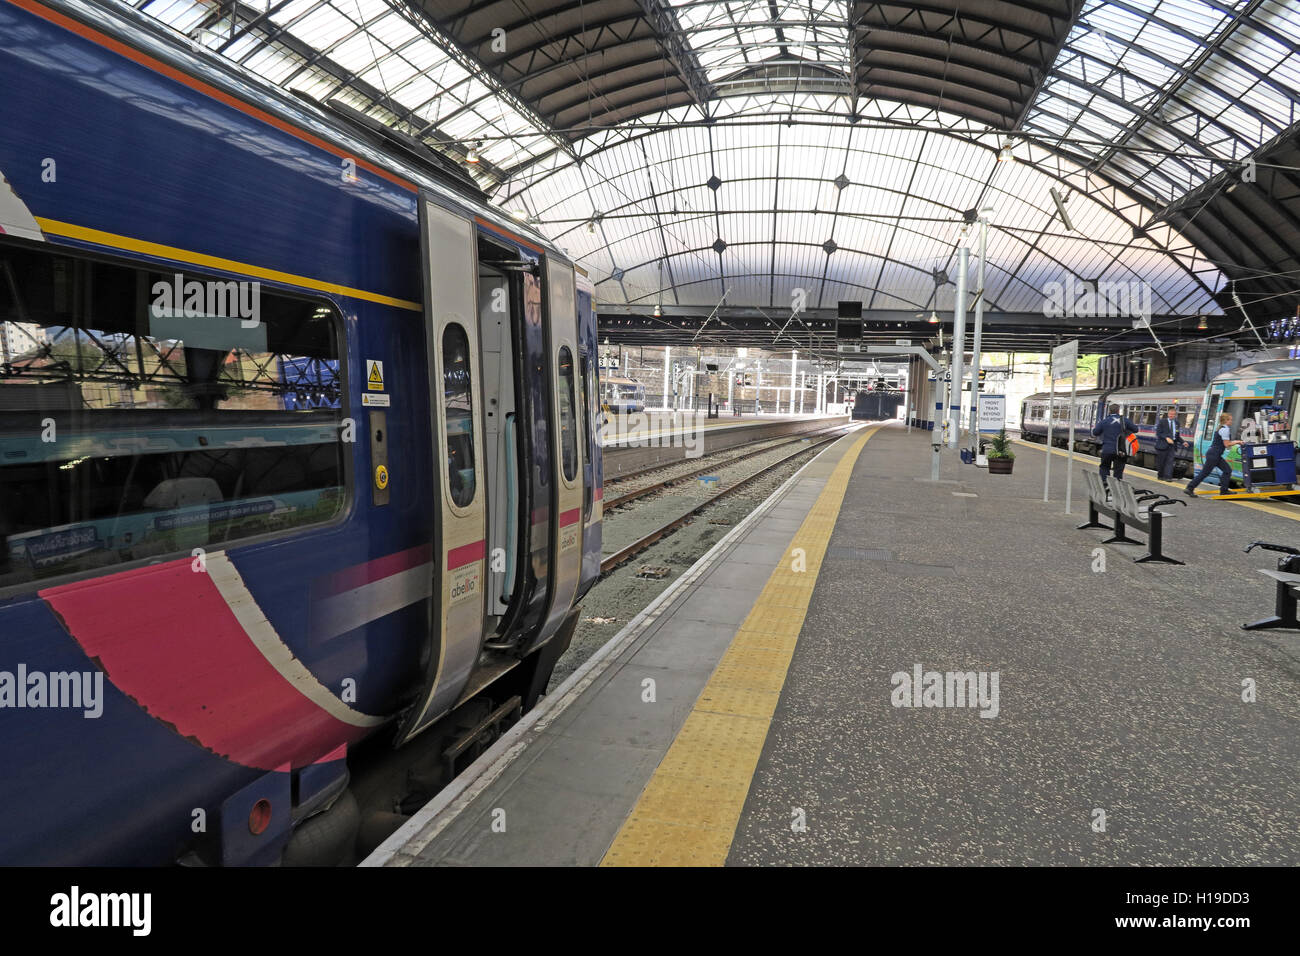 City,Centre,mainline,main,line,ScotRail,train,trains,roof,canopy,transport,transit,rail,terminus,central,greater,concourse,High,Level,platforms,diesel,multiple,units,DMU,Queen Street,Greater Glasgow,diesel multiple unit,GoTonySmith,@HotpixUK,Tony,Smith,UK,GB,Great,Britain,United,Kingdom,Scottish,British,Scotland,Buy Pictures of,Buy Images Of,Images of,Stock Images,Tony Smith,United Kingdom,Great Britain,British Isles